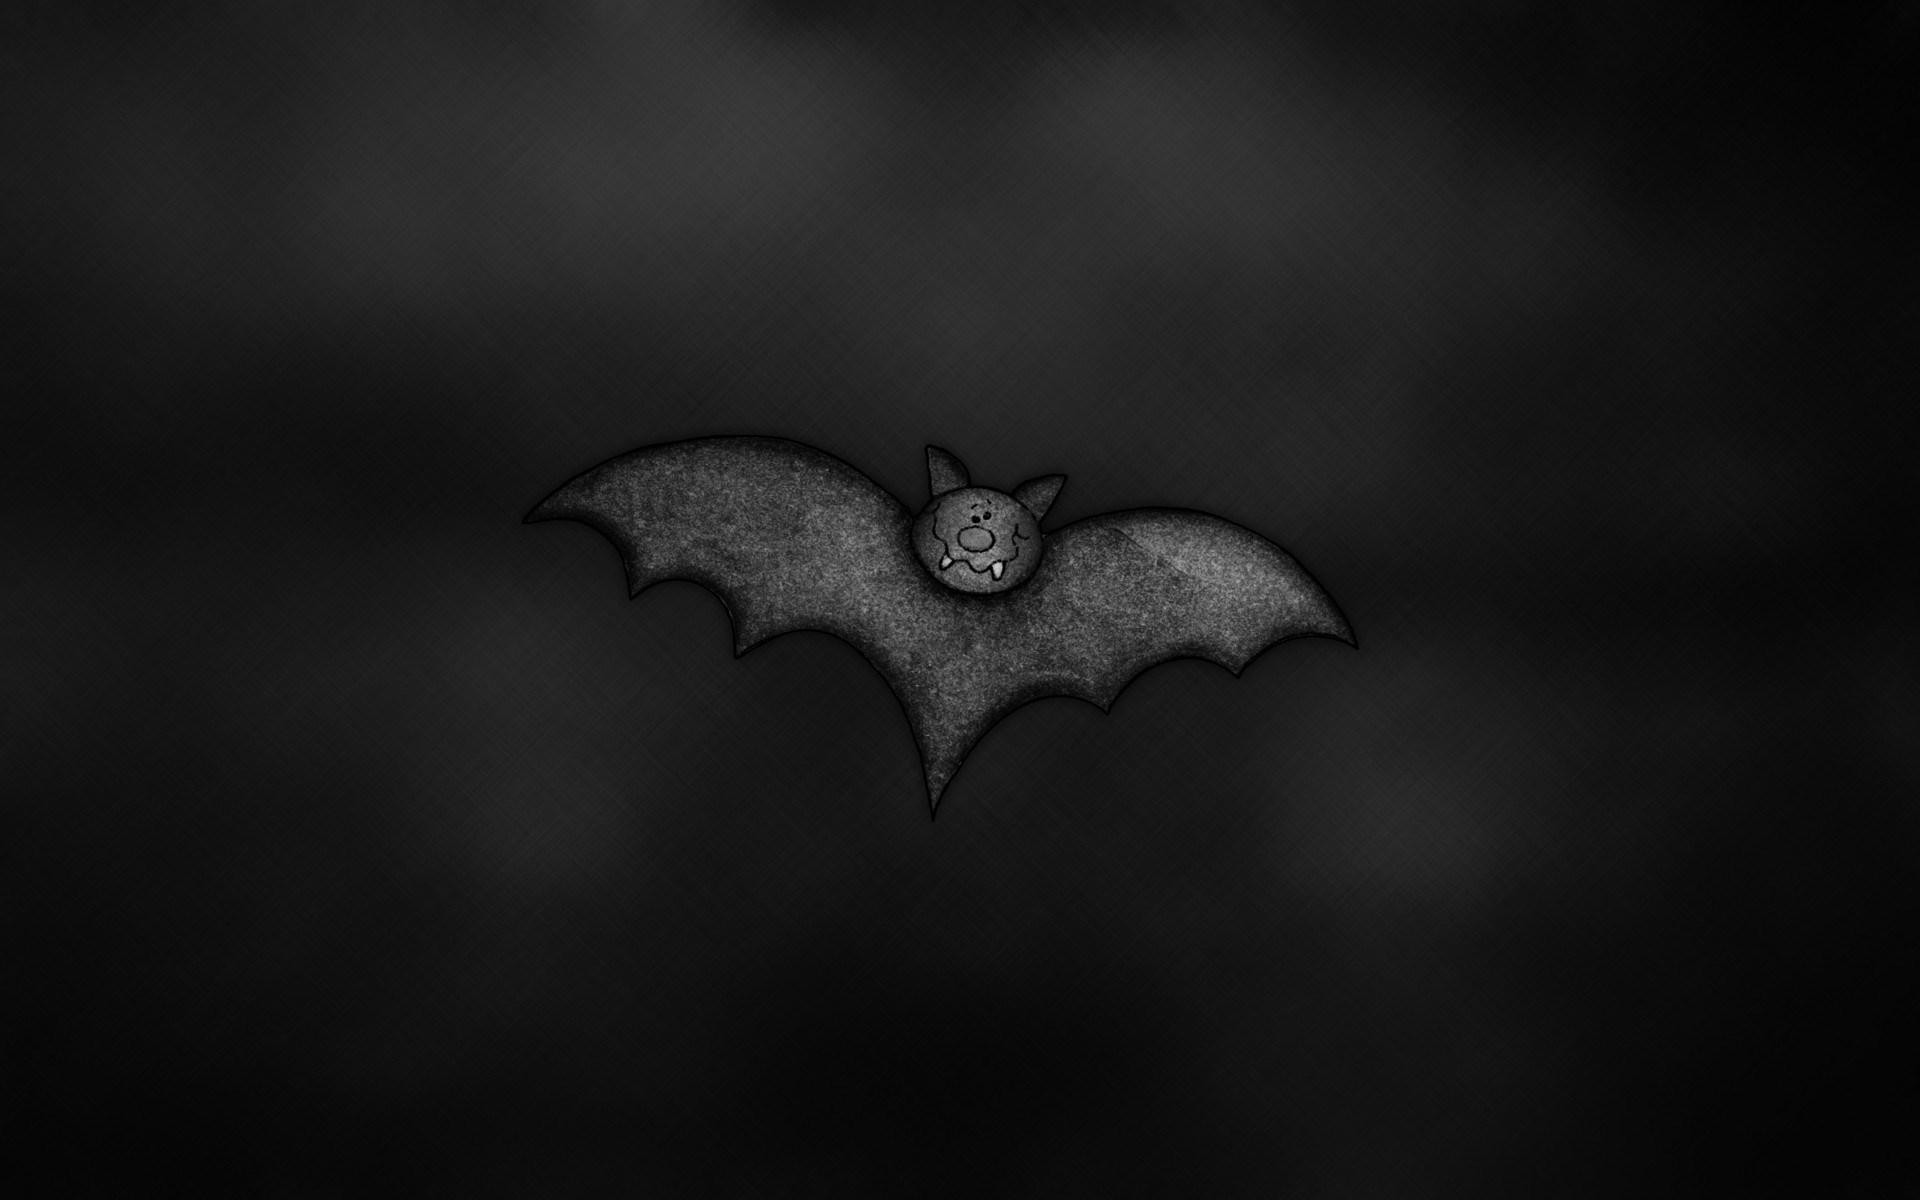 1920x1200 wallpaper.wiki-Funny-Bat-Computer-Photo-PIC-WPC009840